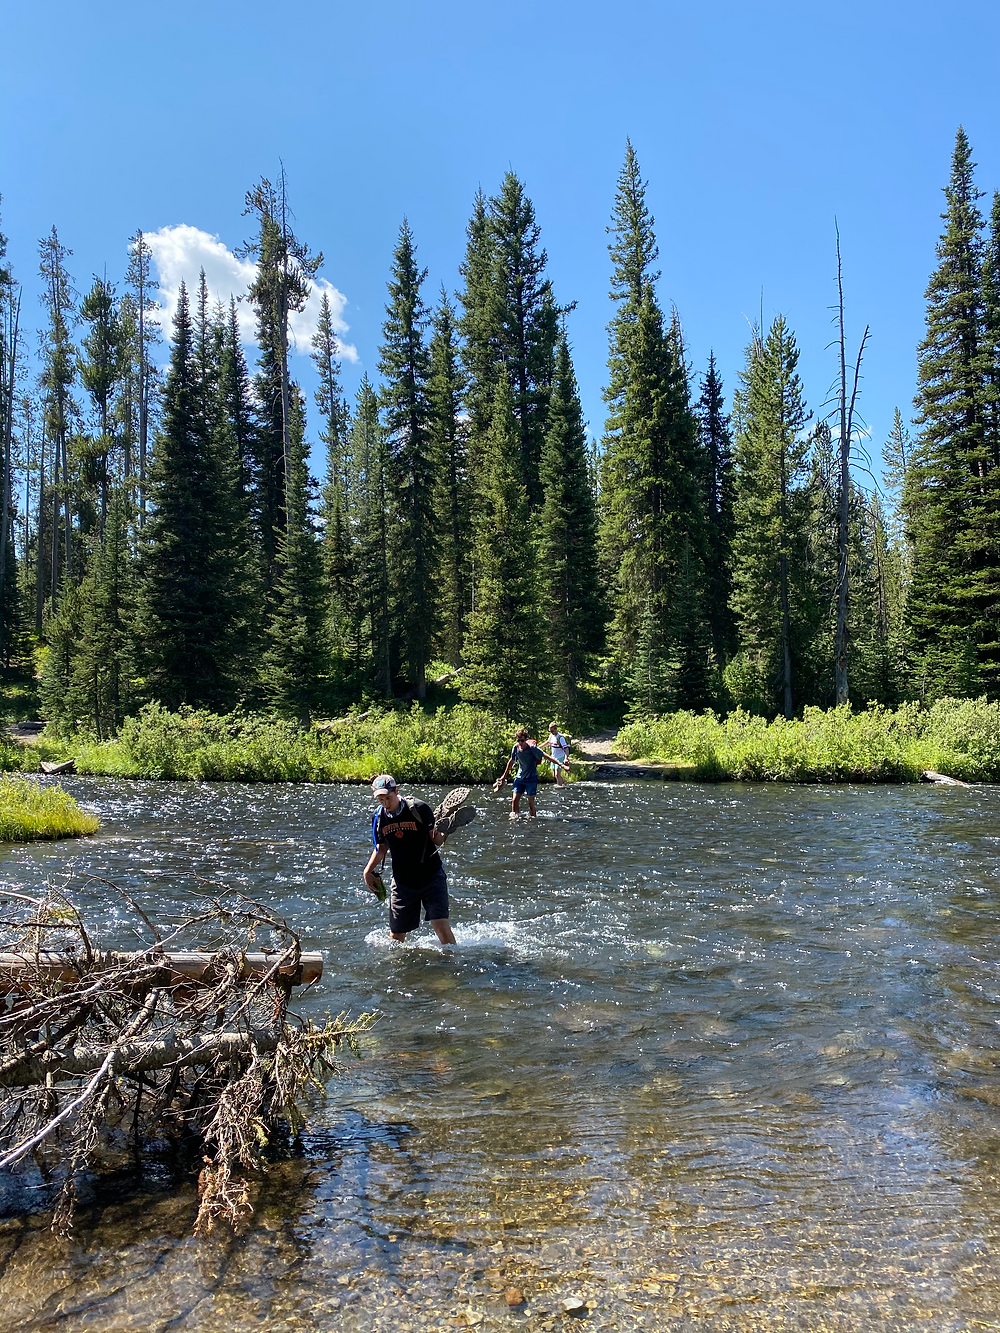 People fording the Falls River on the Union Falls Hike in Yellowstone National Park